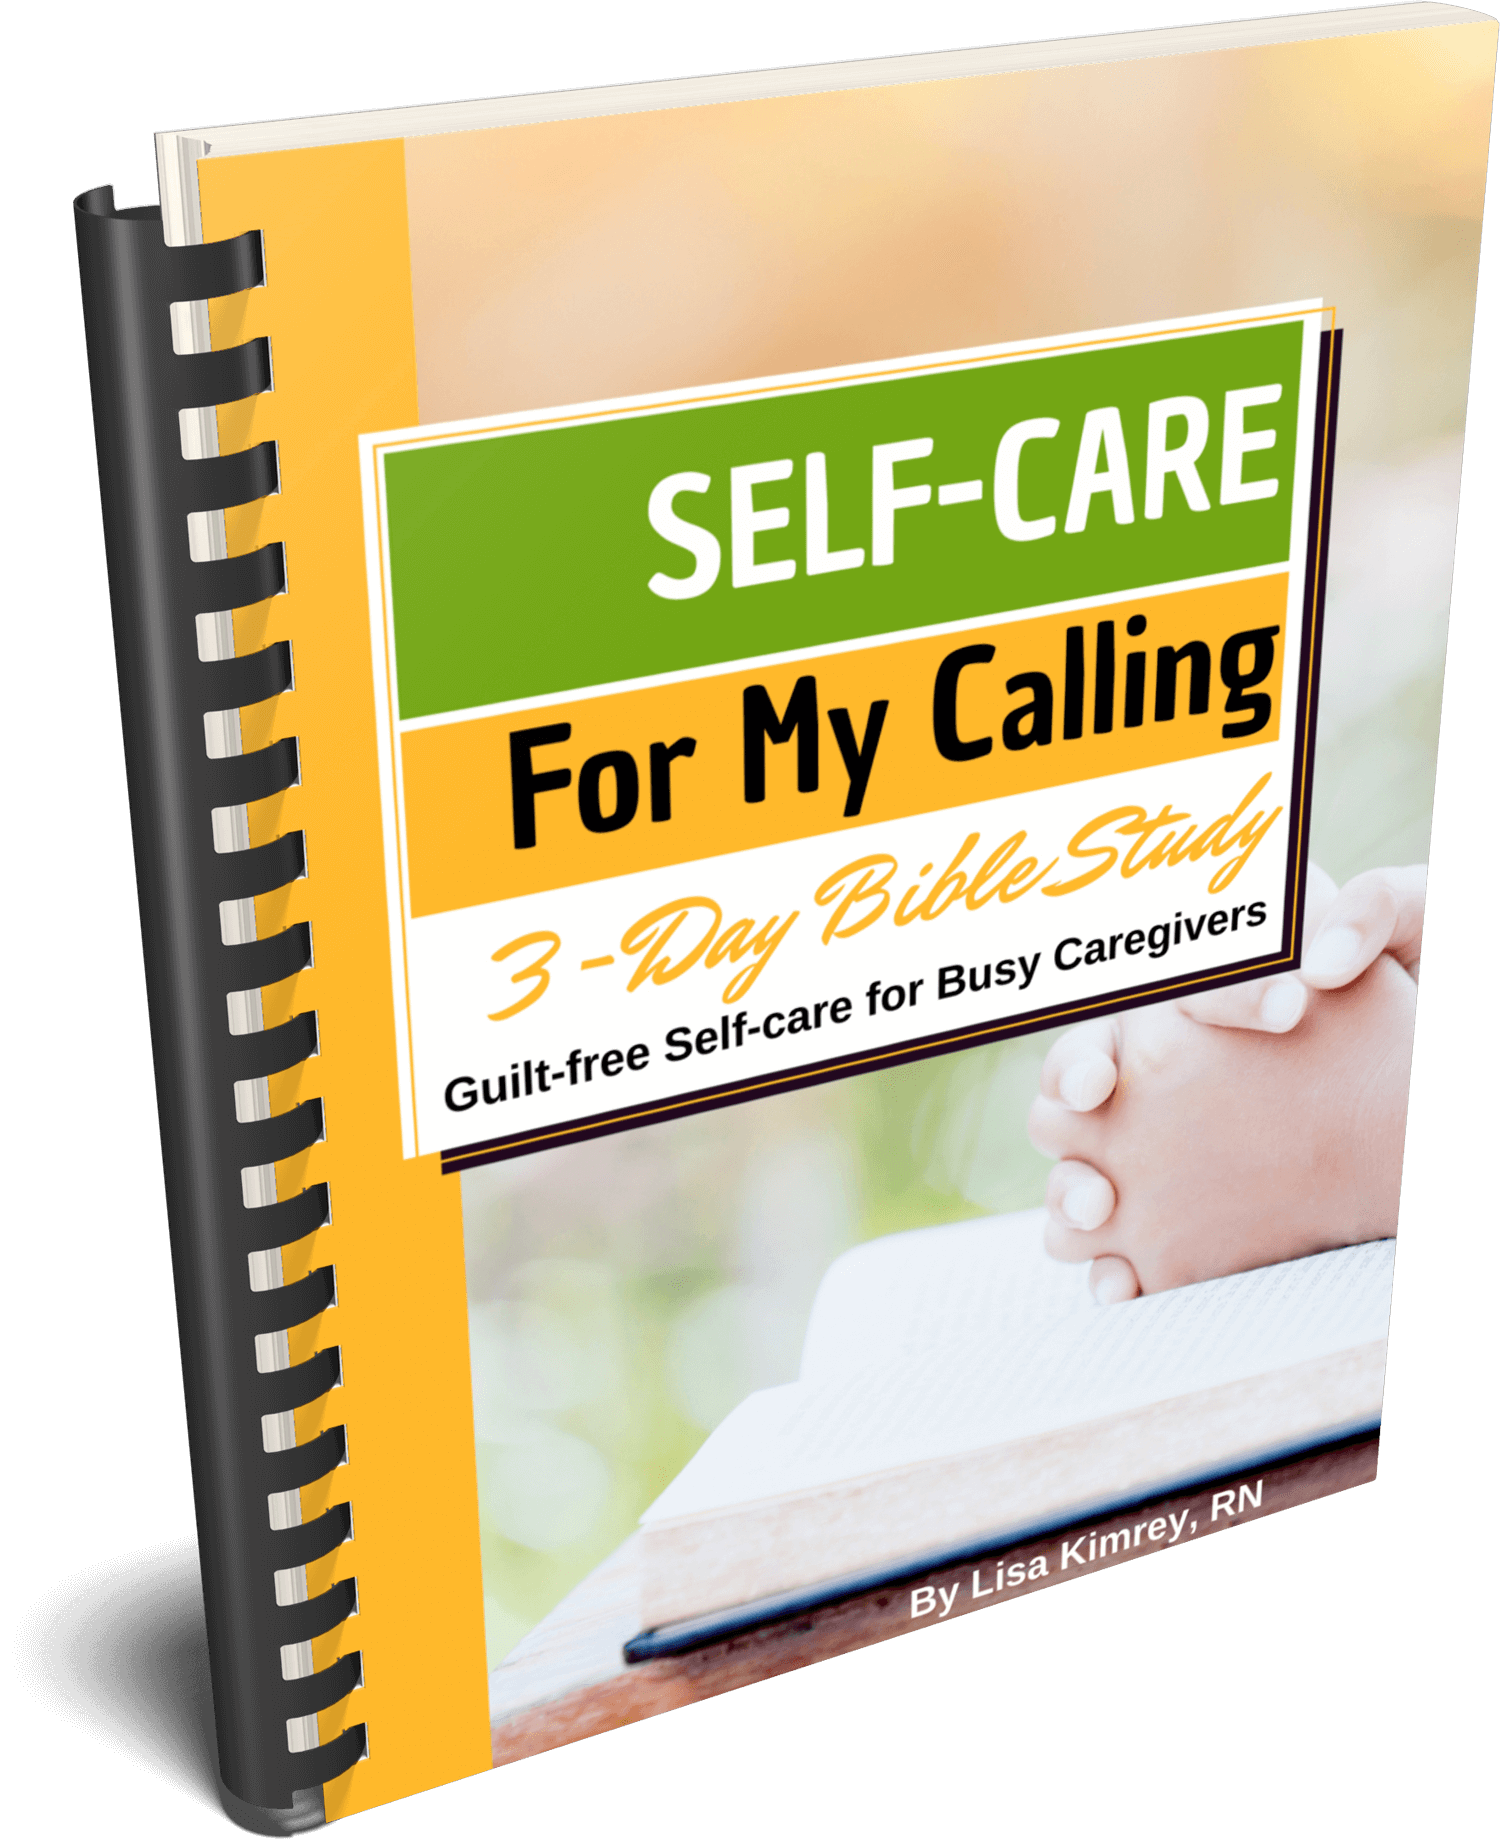 Self-care for My Calling Bible Study